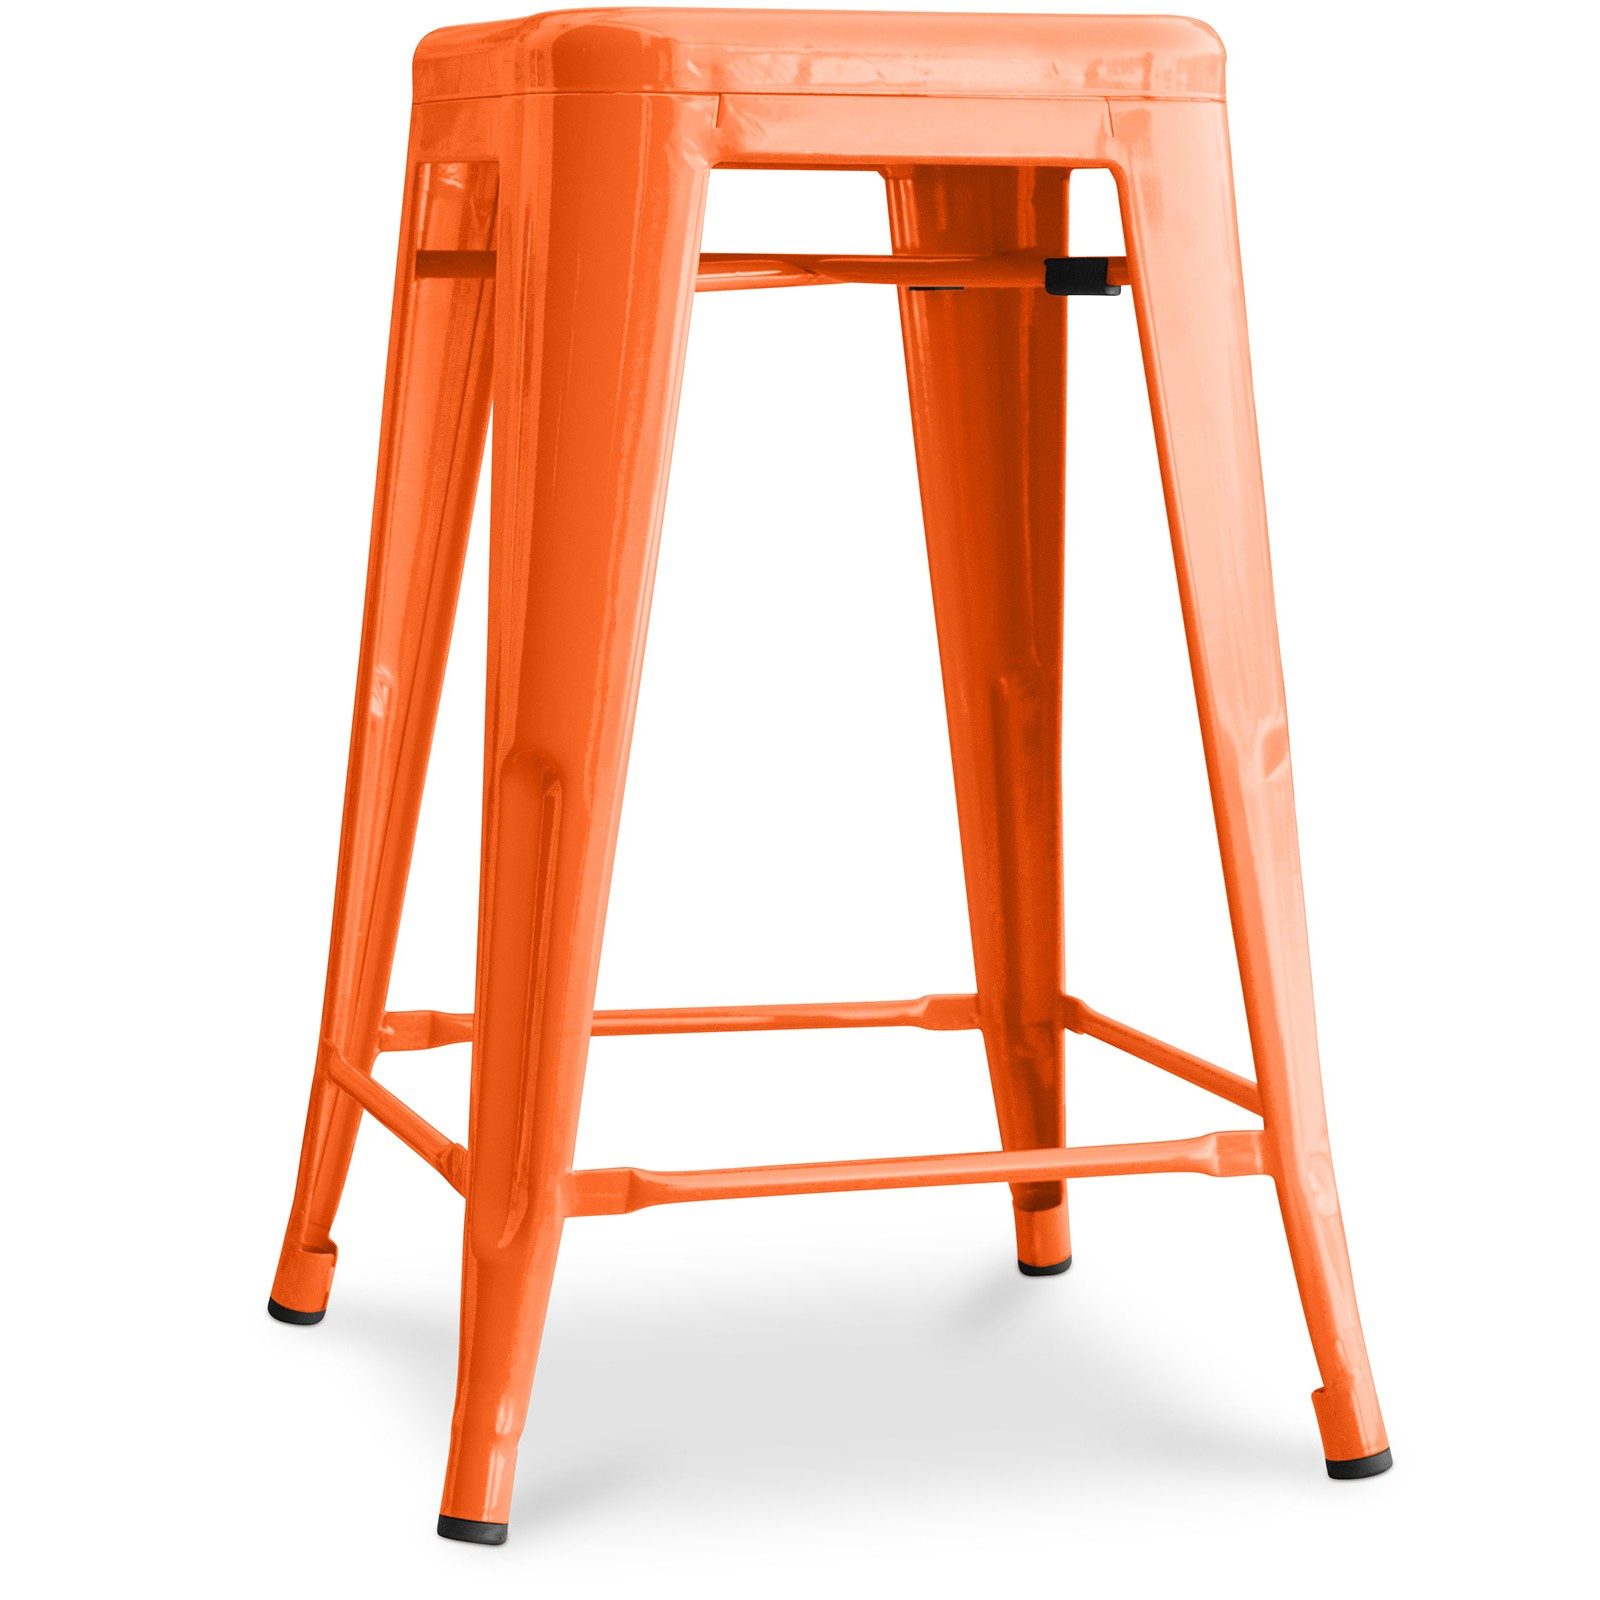 tabouret bar acier orange brillant tolix 60 cm inspir xavier pauchard lot de 4. Black Bedroom Furniture Sets. Home Design Ideas